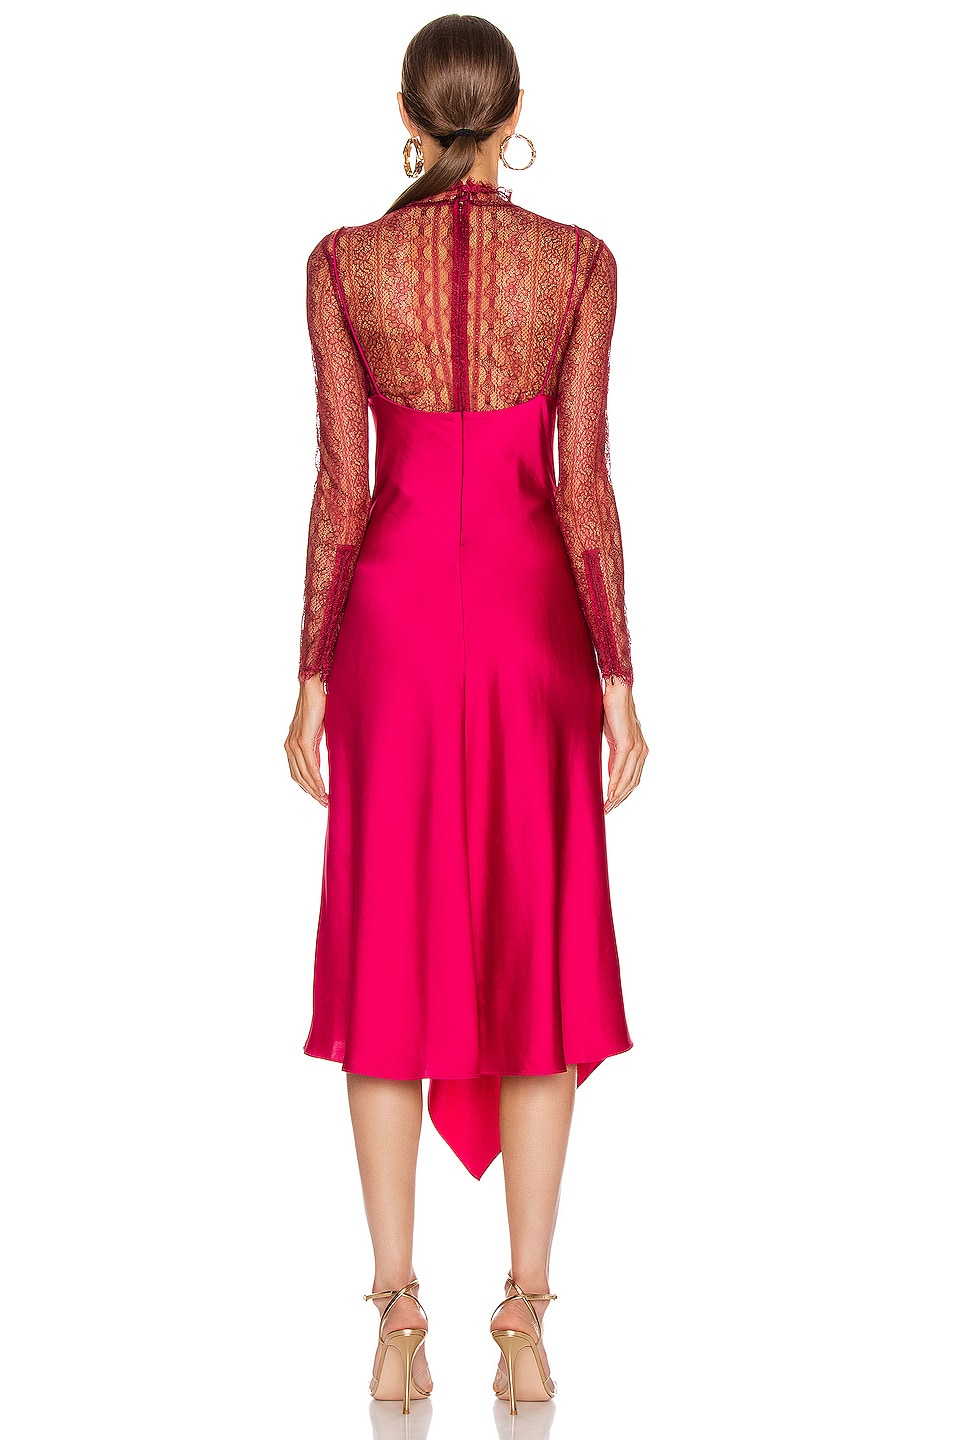 Image 4 of JONATHAN SIMKHAI Lace Overlay Dress in Siren Red